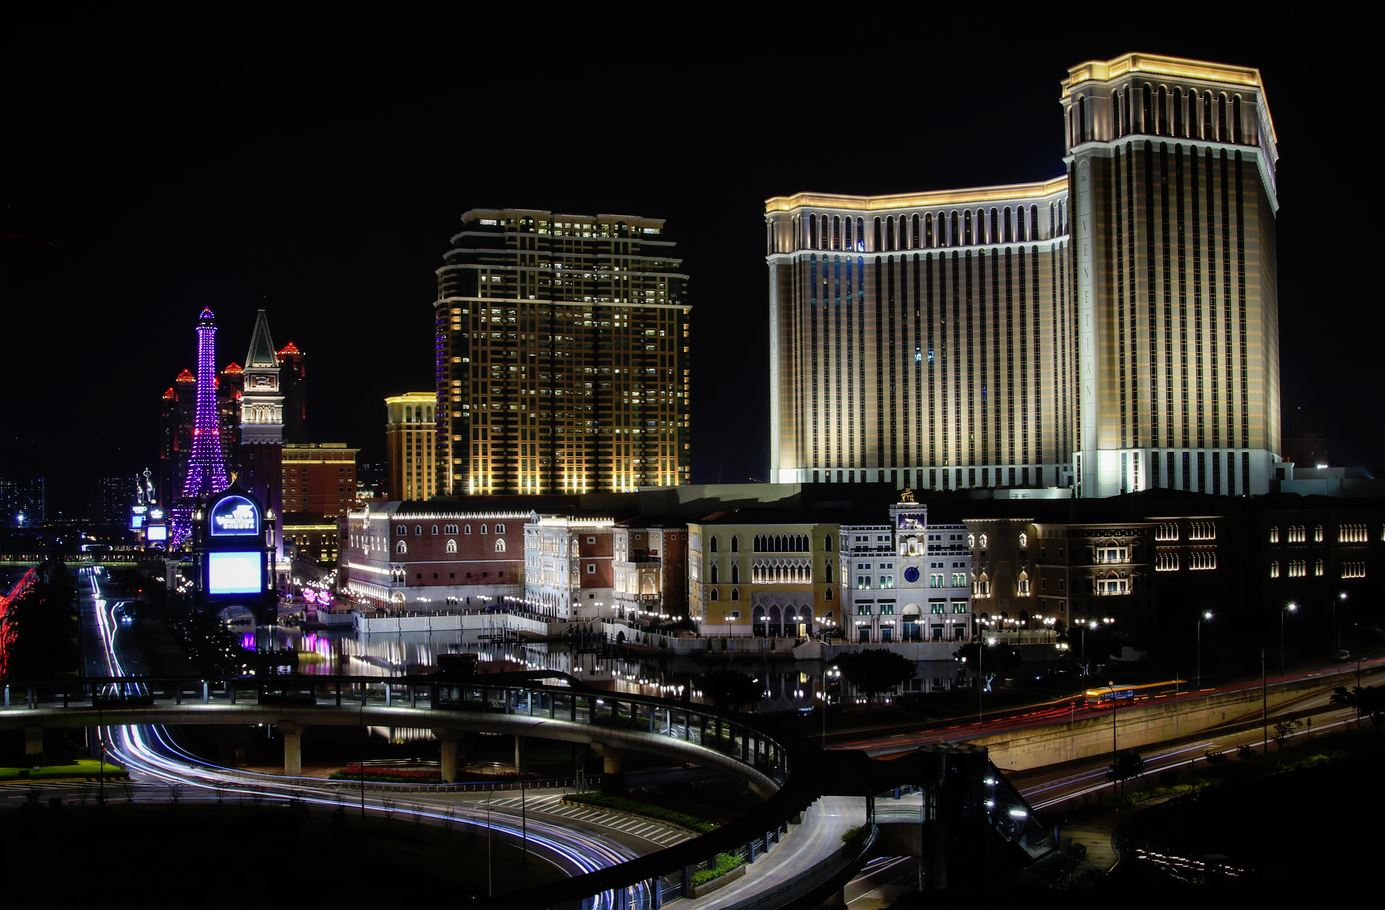 Las Vegas Sands boss sells The Venetian to invest in Asian Markets